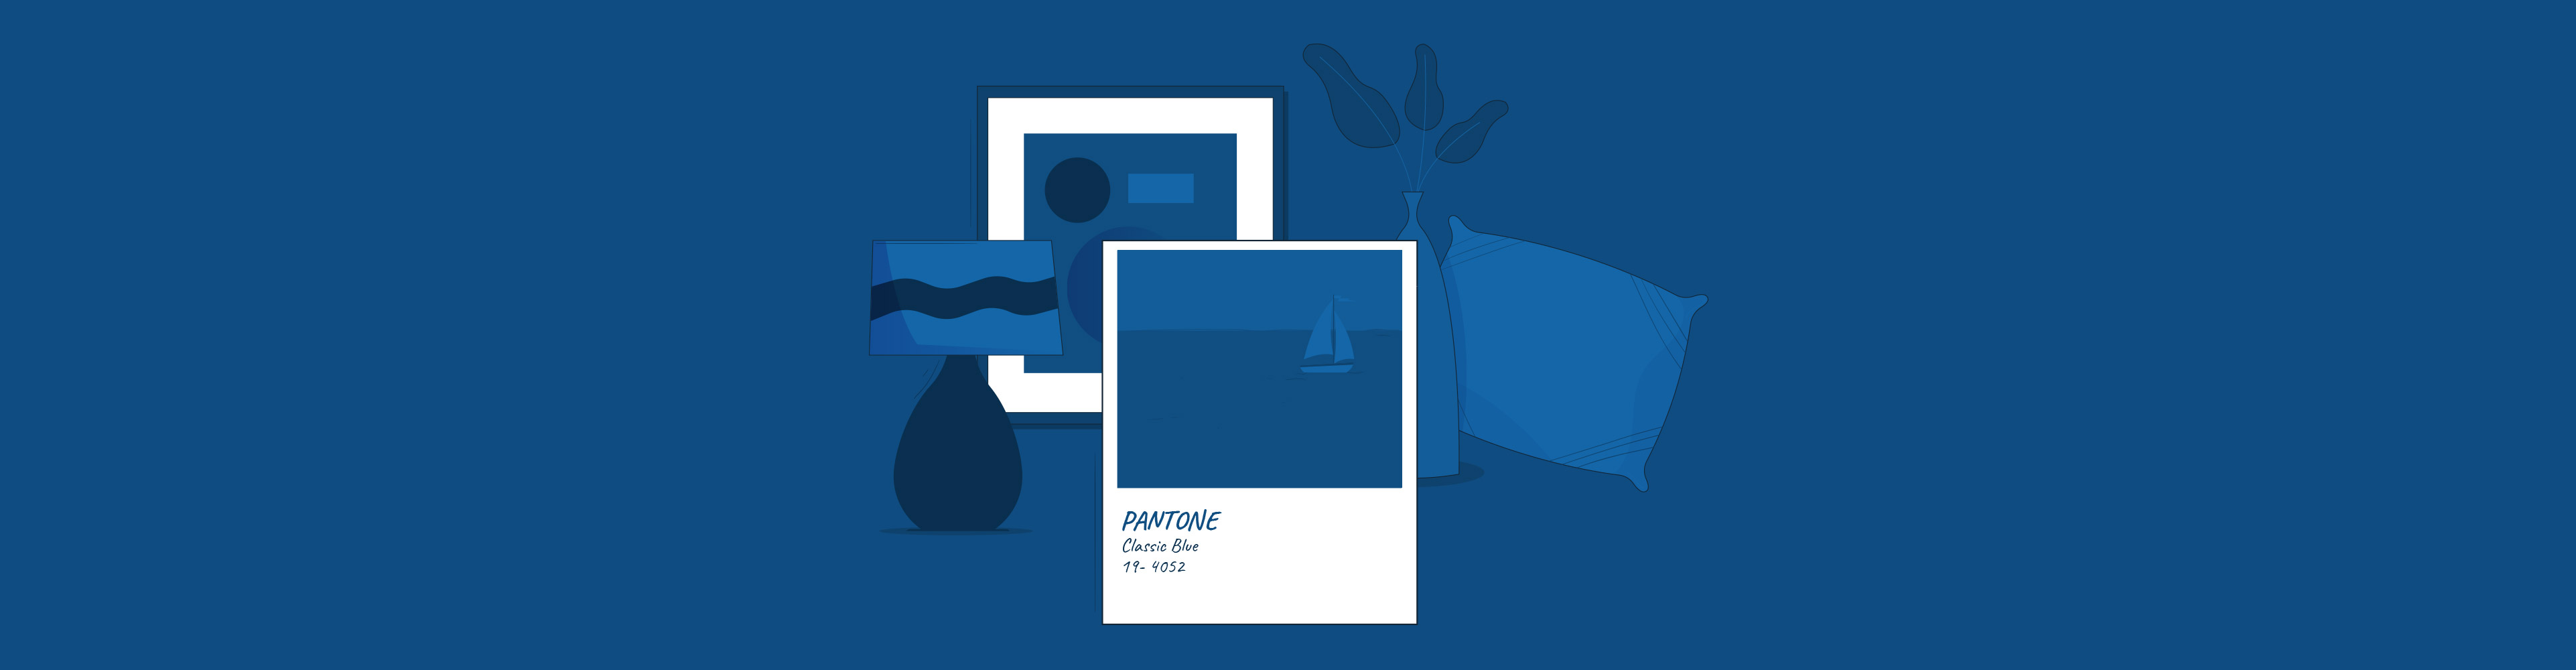 pantone-color-of-the-year-2020-classic-blue-header-wide